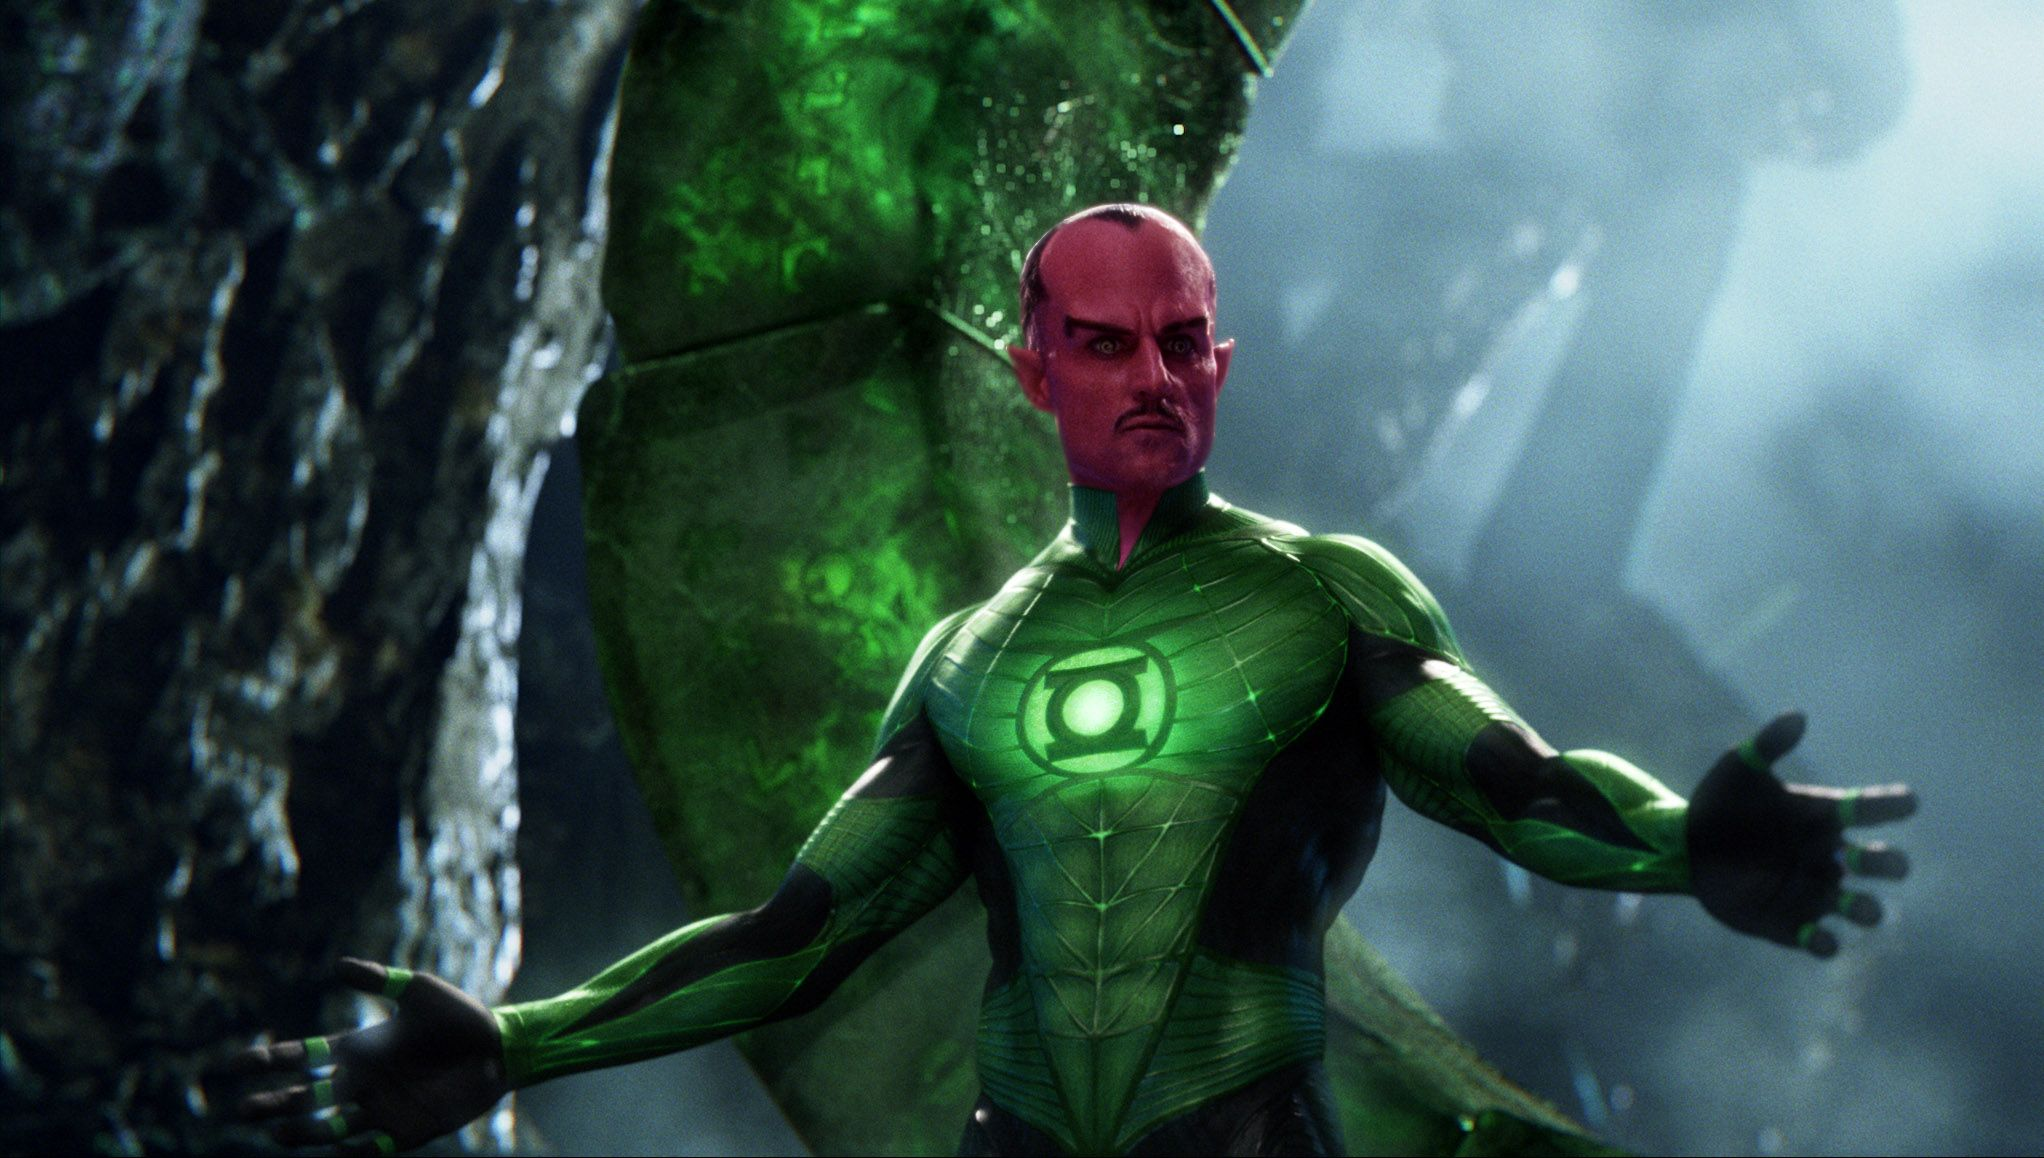 Dominic Dierkes Wallpapers GREEN LANTERN High Resolution Movie Images Collider